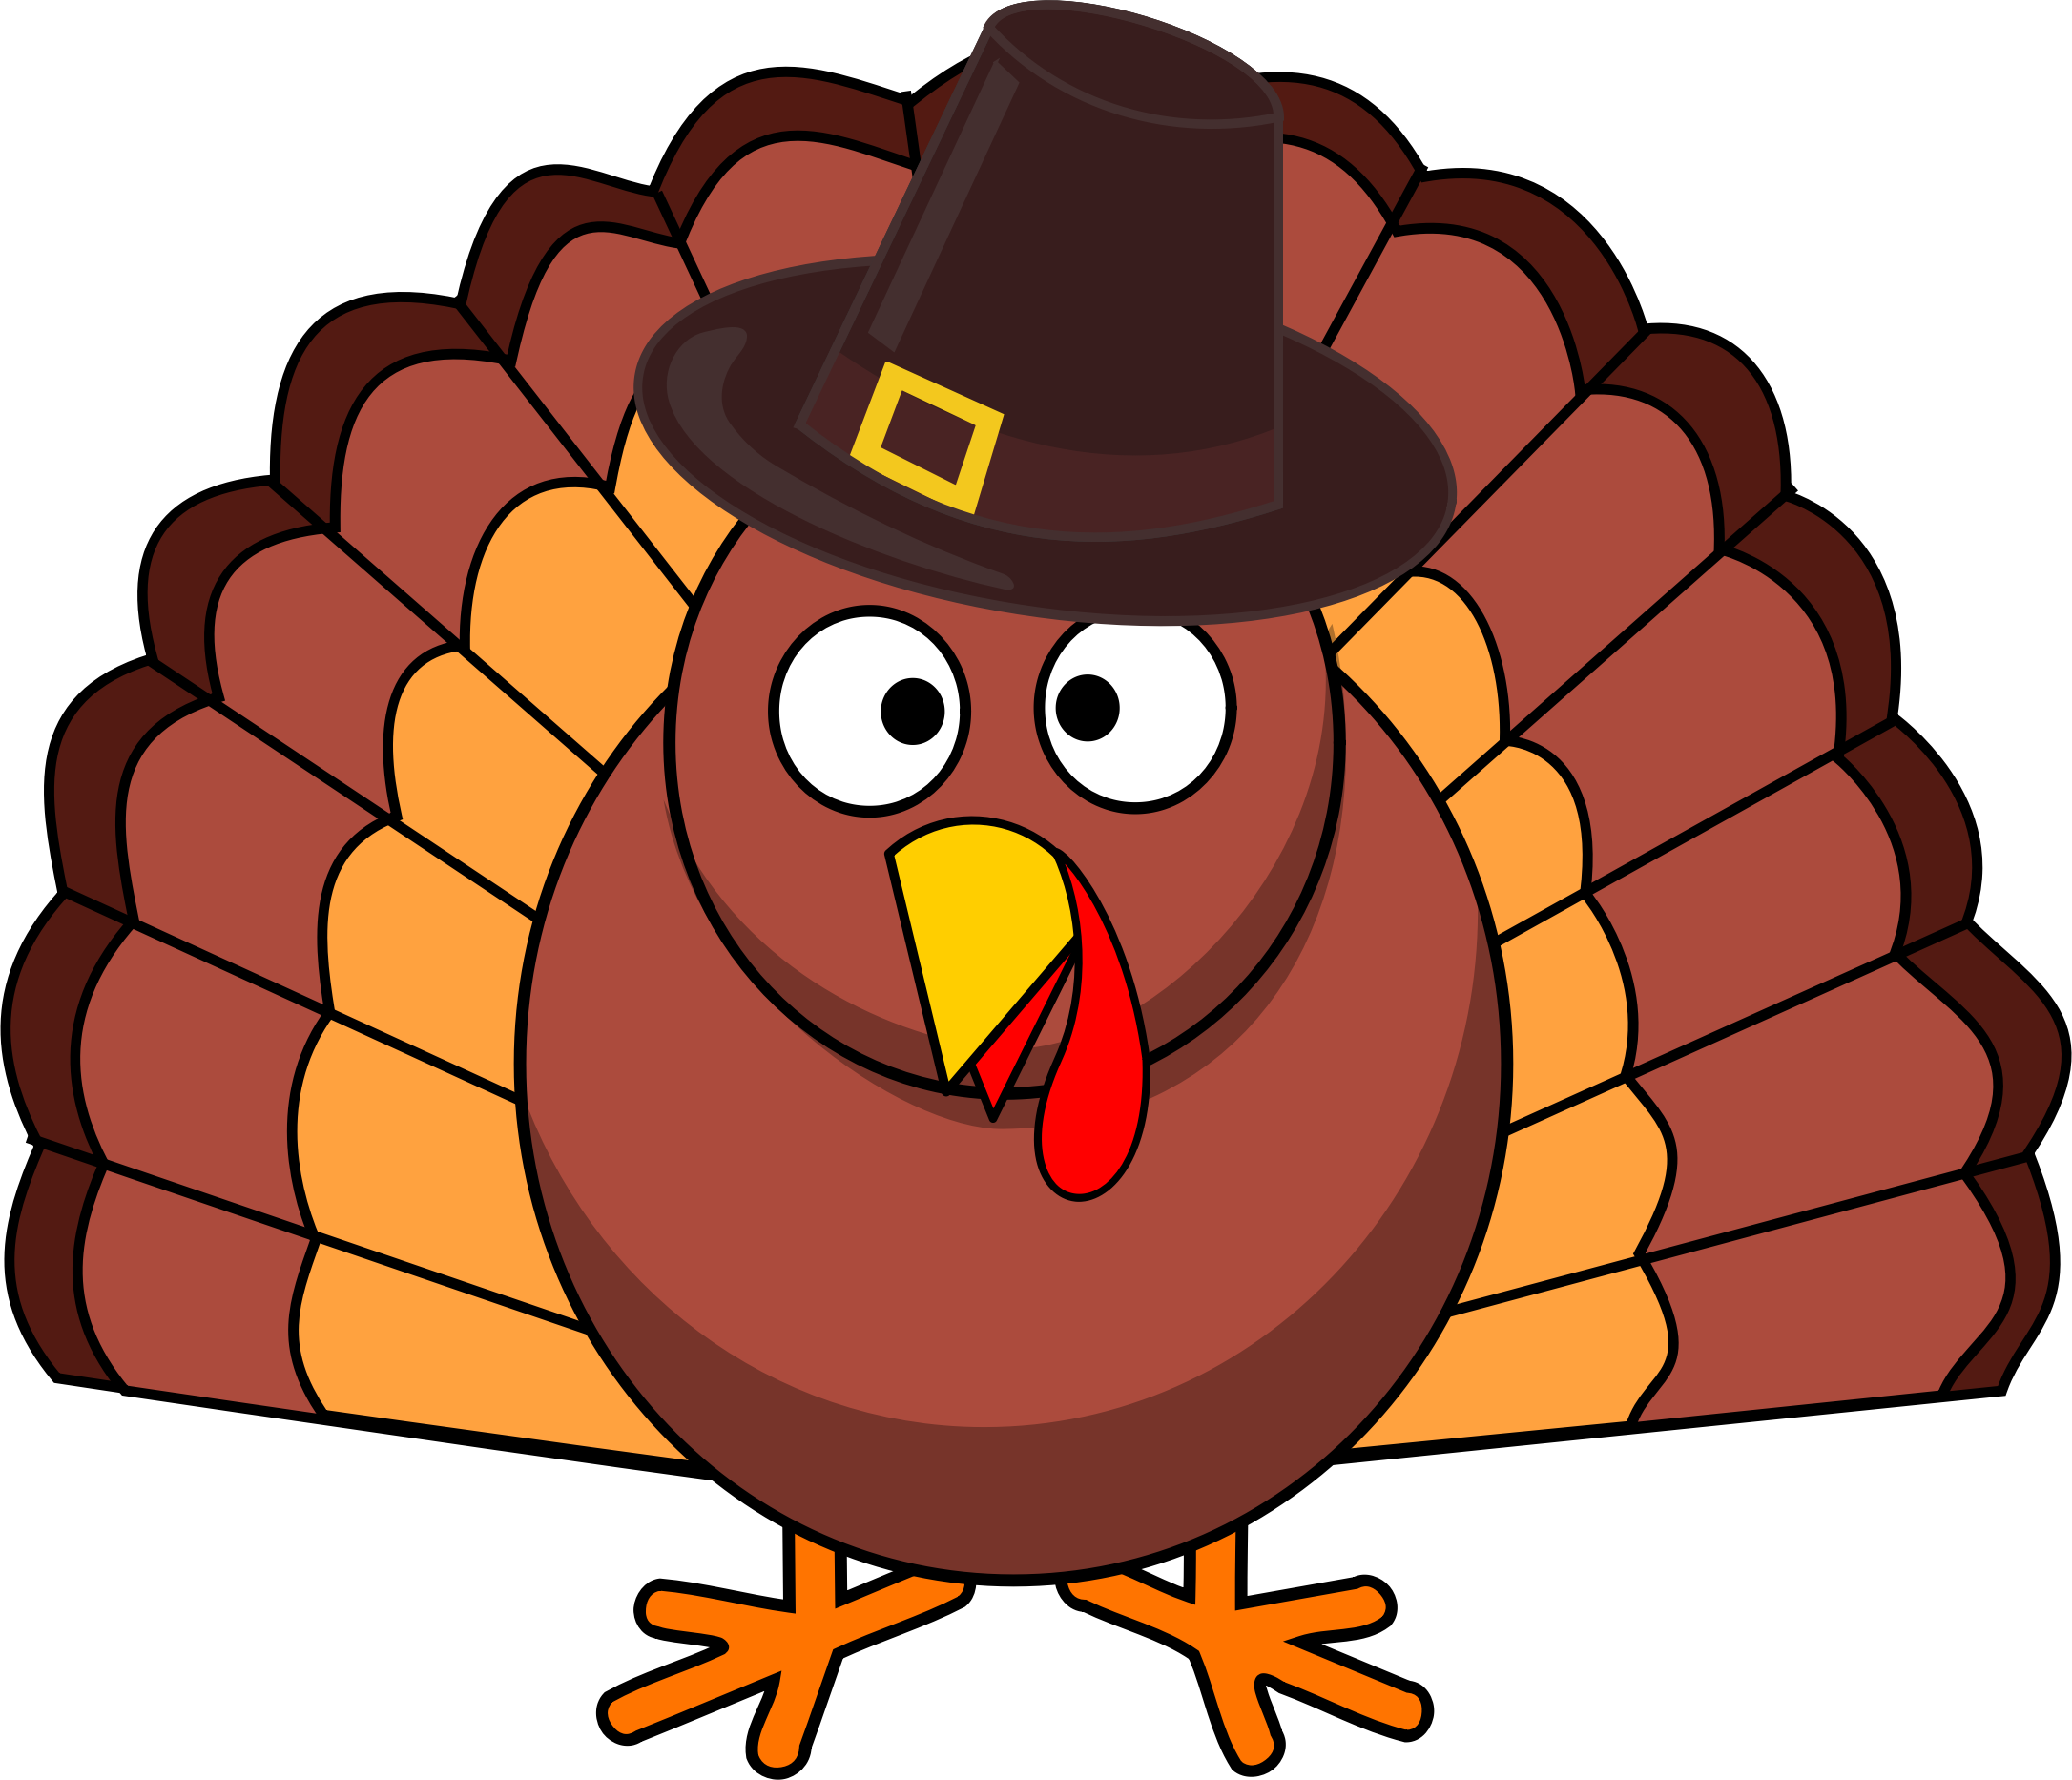 turkey silhouette clipart at getdrawings com free for personal use rh getdrawings com  dancing turkey clip art free